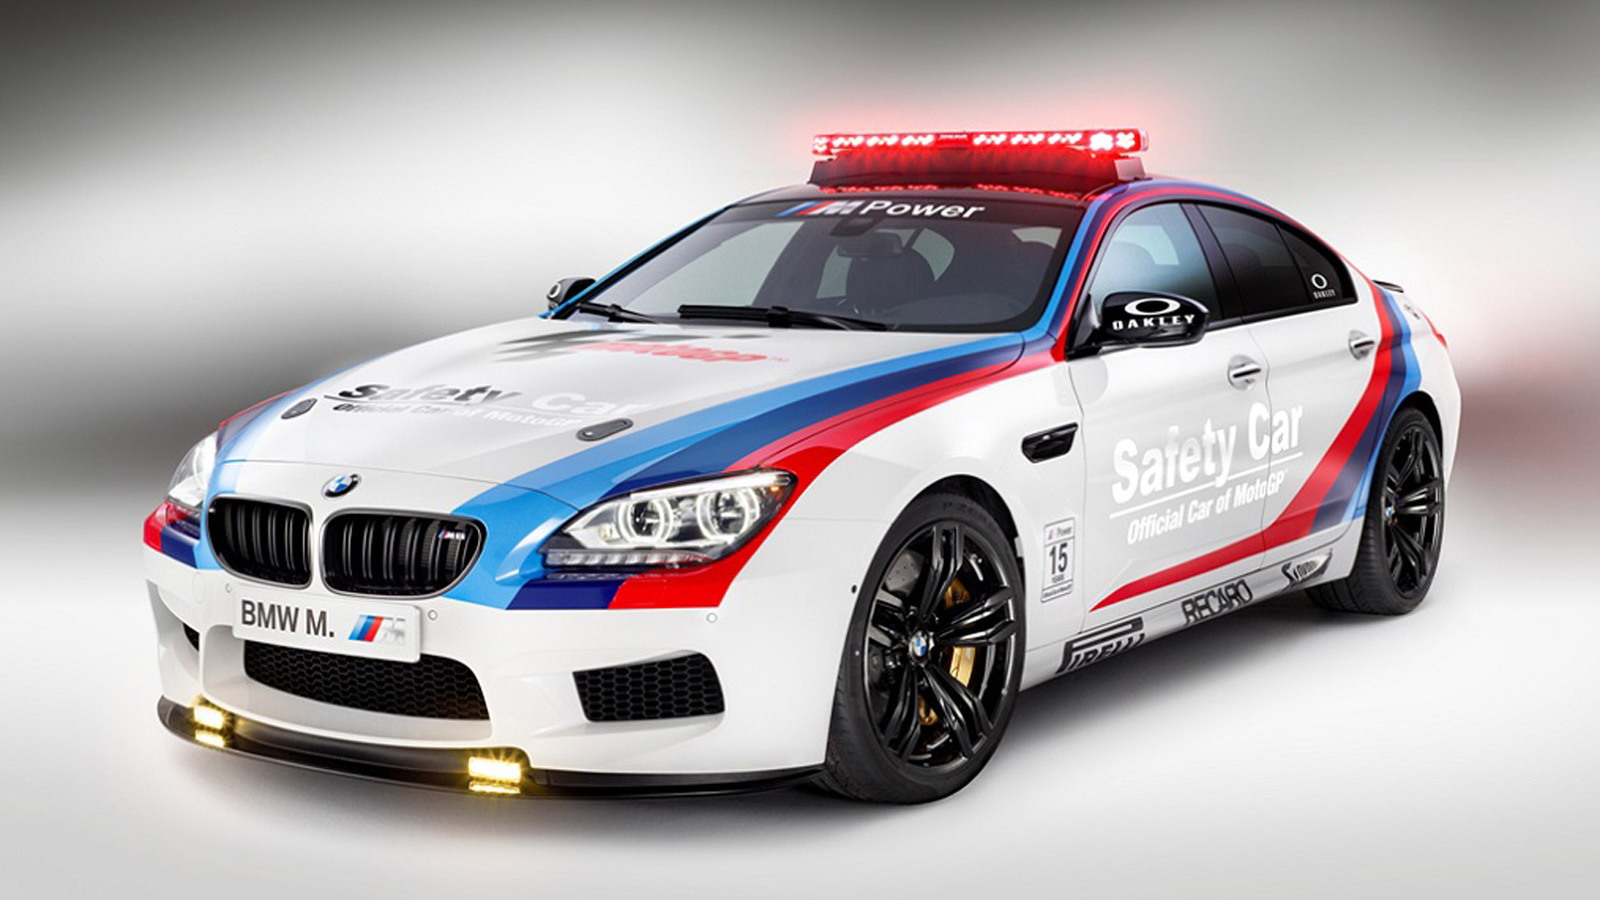 Bmw M6 Gran Coupe Picked As Official Safety Car For 2013 Motogp Season